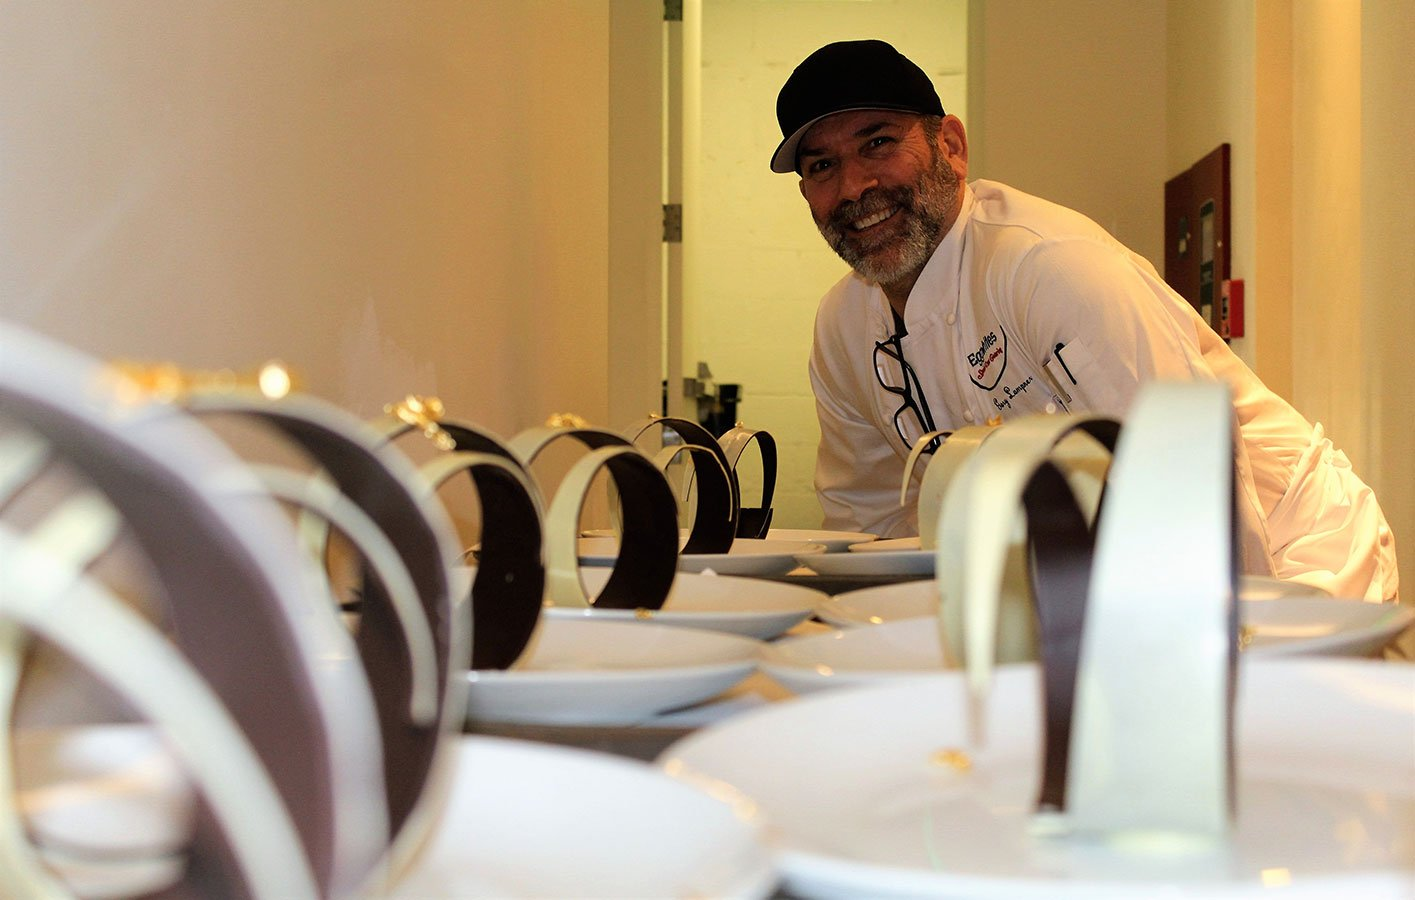 Eggwhites Catering 25th Anniversary | Chef Gary Lampner | top South Florida caterer